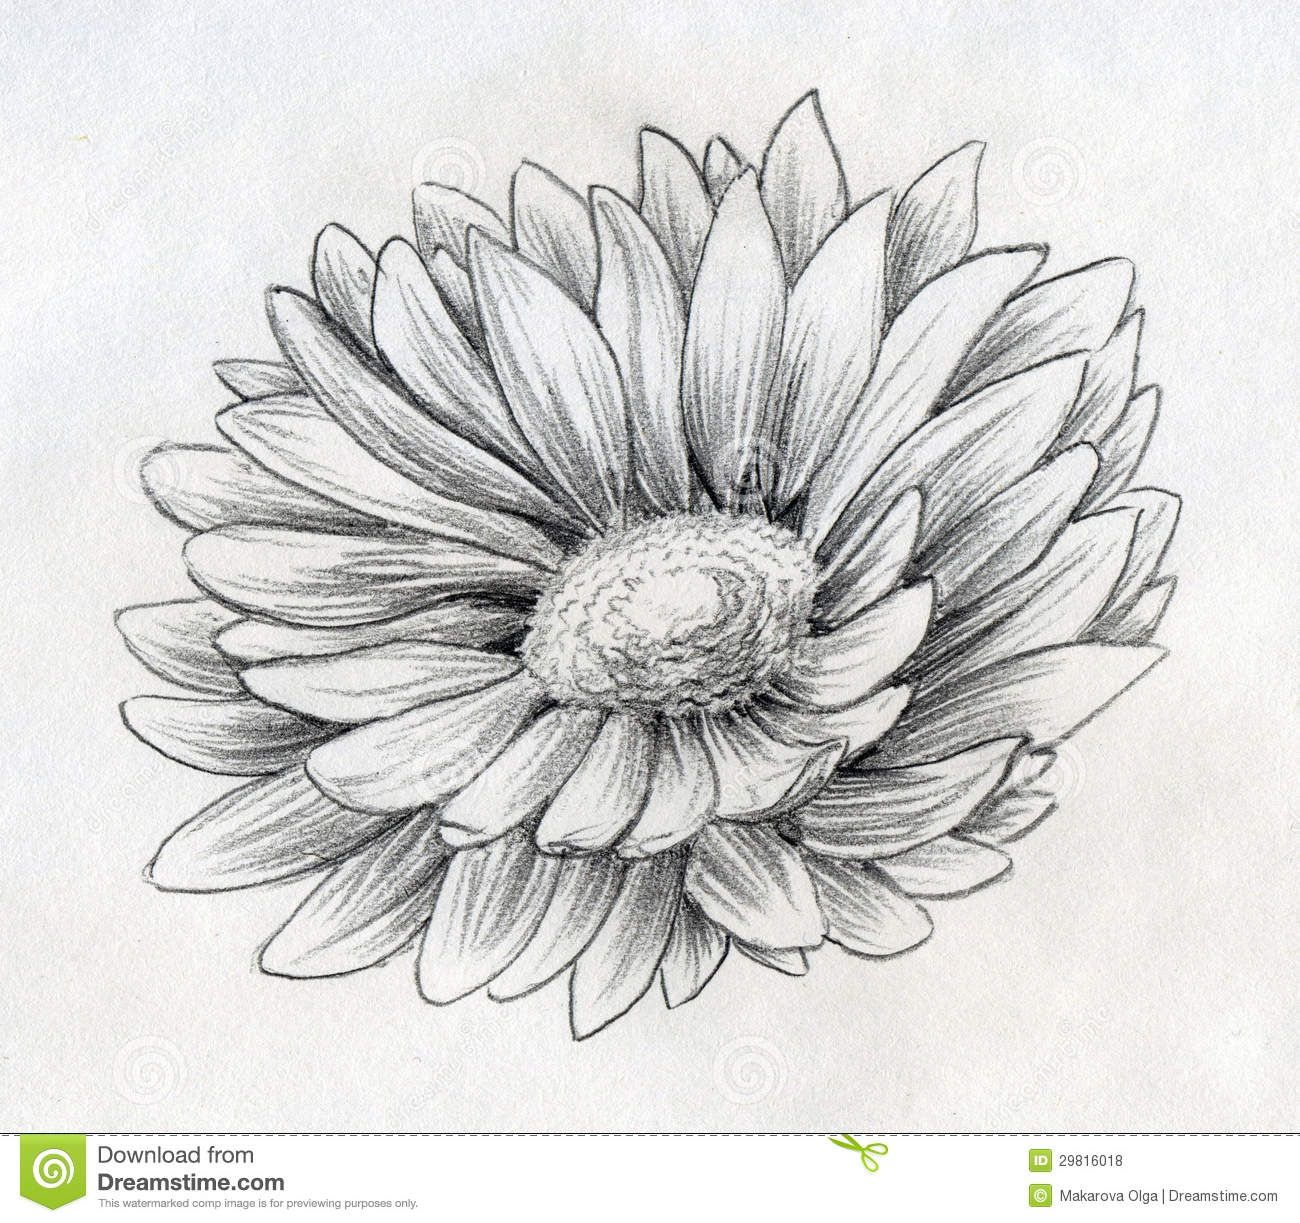 Daisy drawings pencil drawn sketch of a single daisy flower with